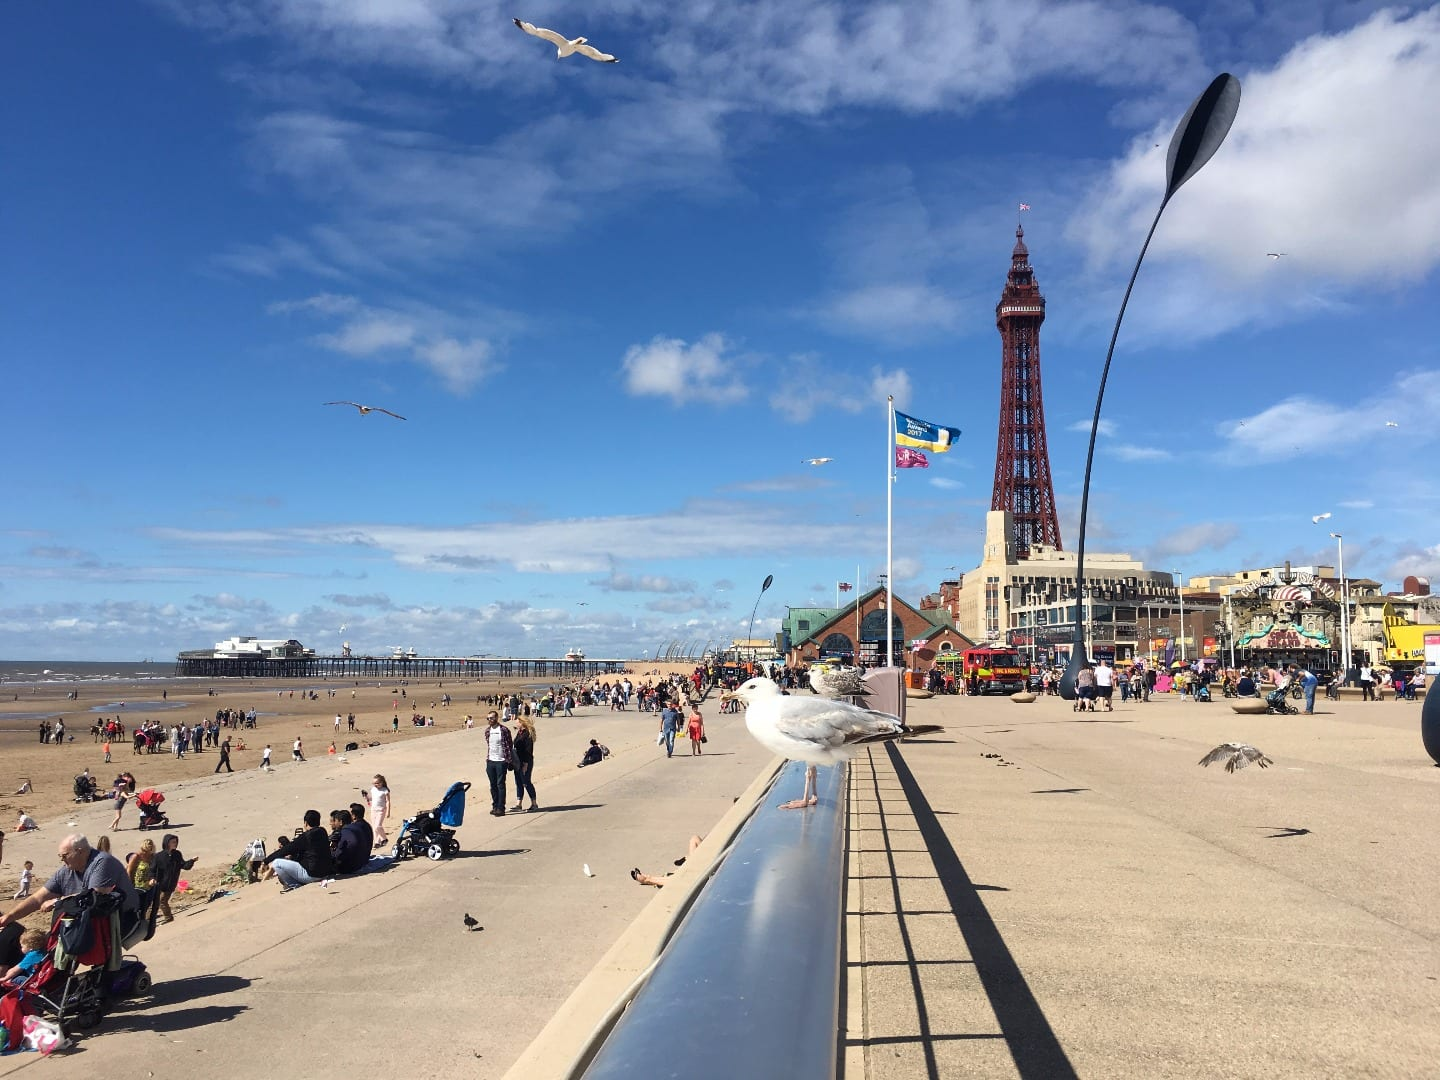 Blackpool Central seafront